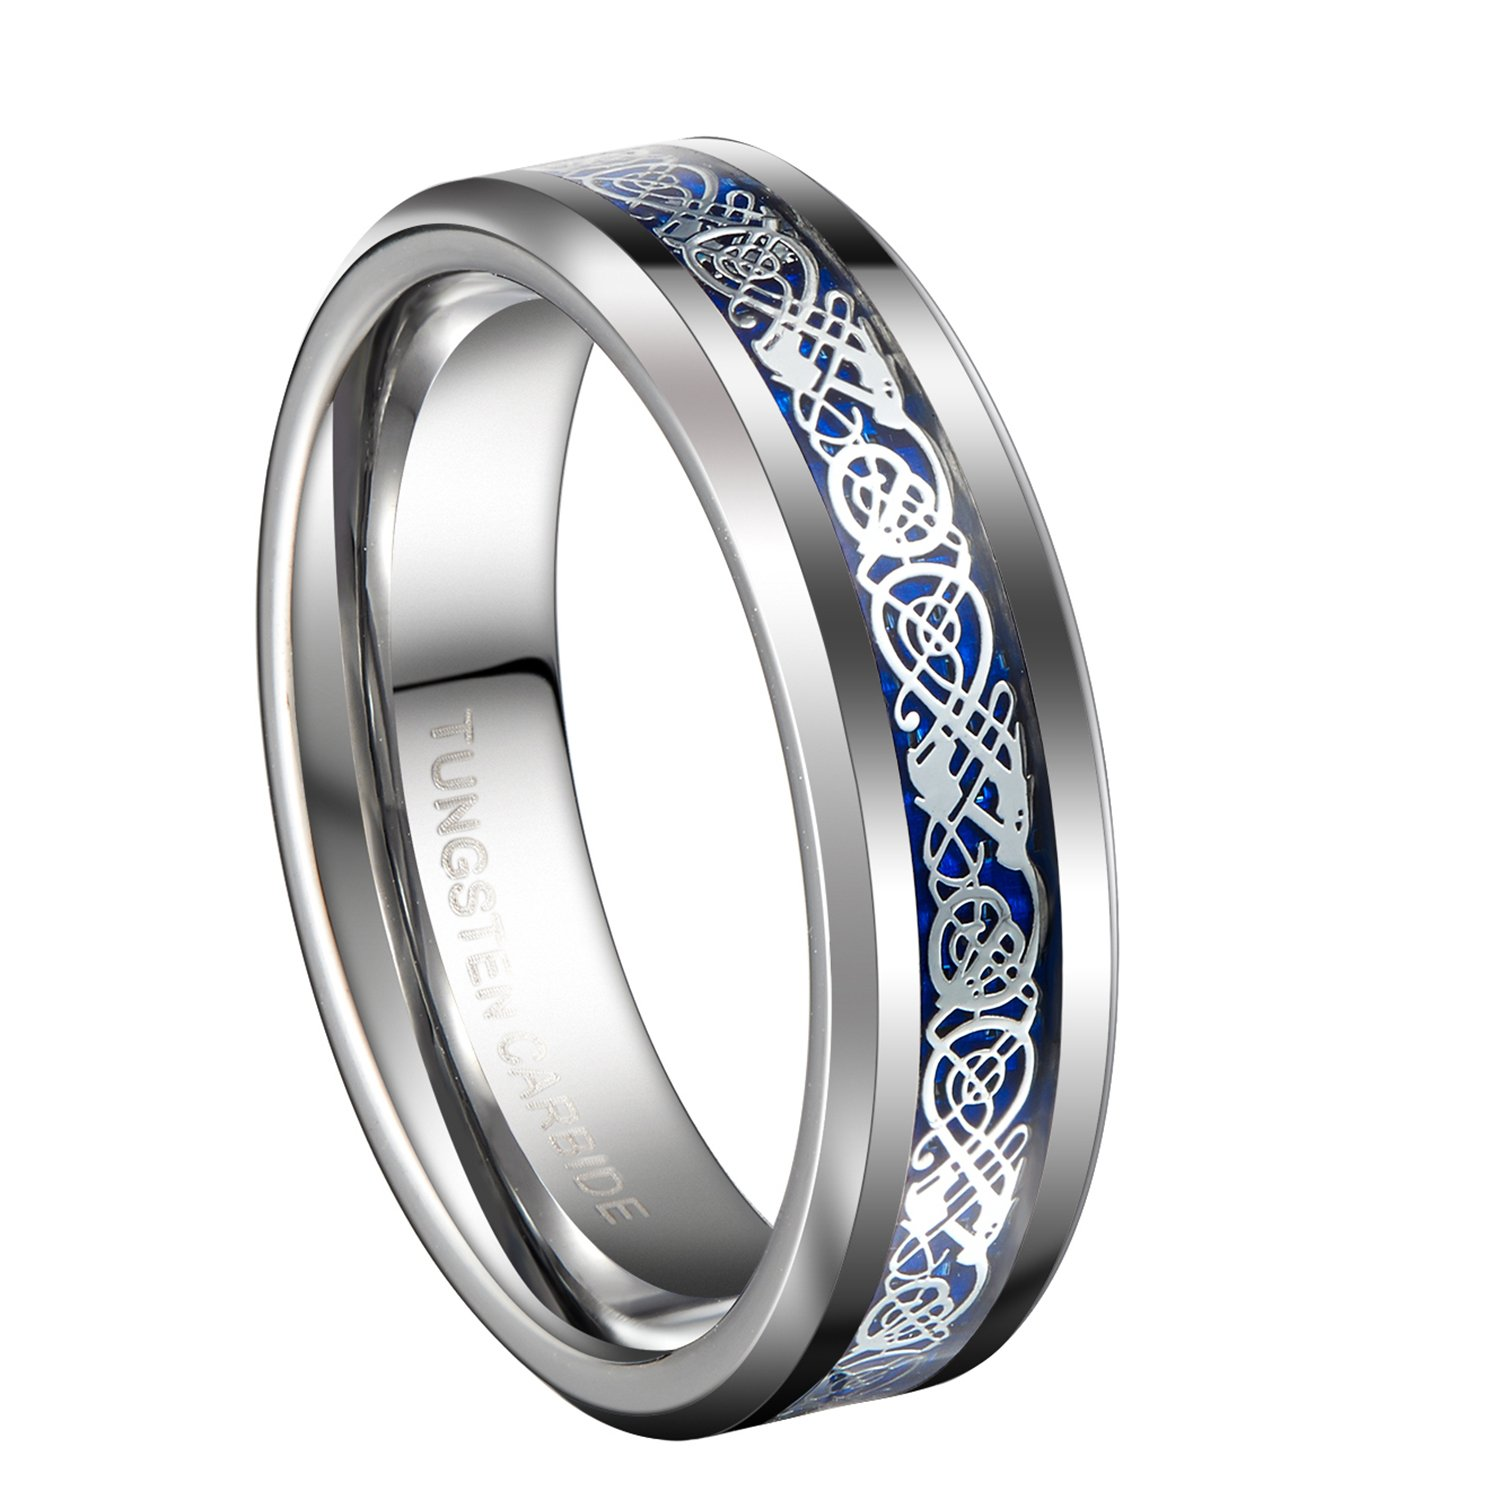 jewellery fibre silvering dragon uk black bands carbide ring wedding amazon tungsten queenwish co blue celtic mens carbon dp band